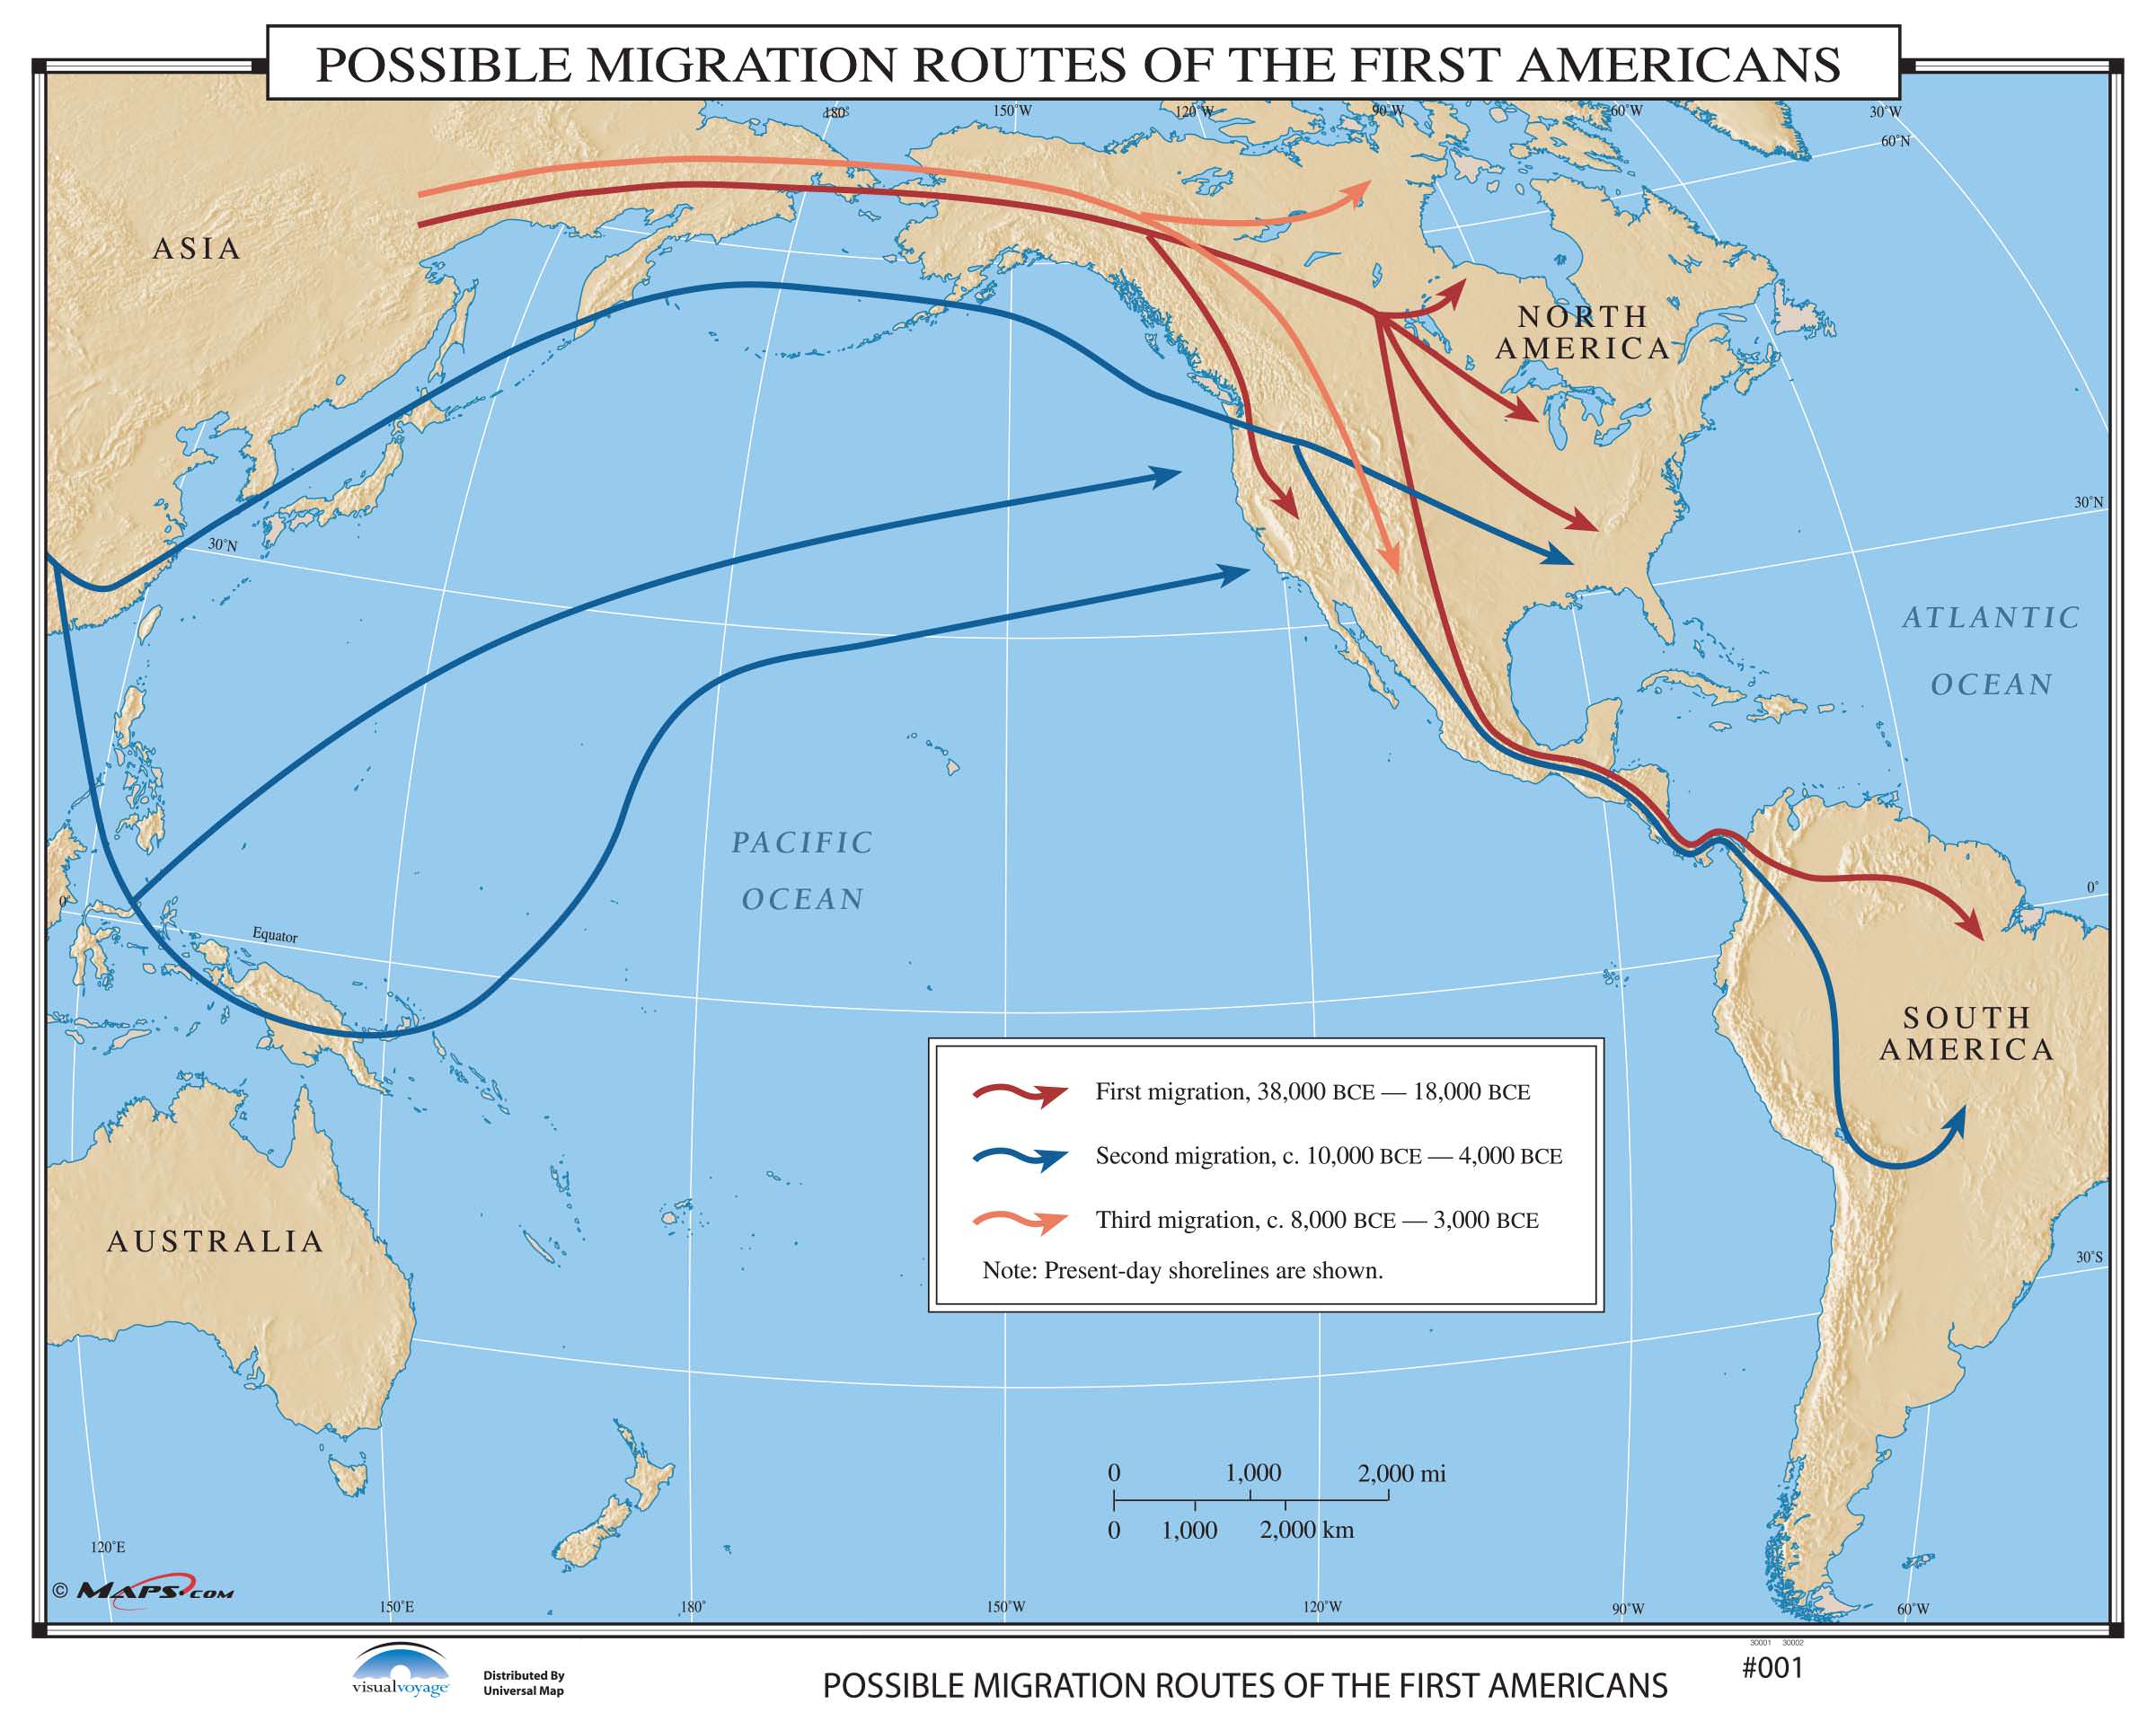 001 Possible Migration Routes Of The First Americans On